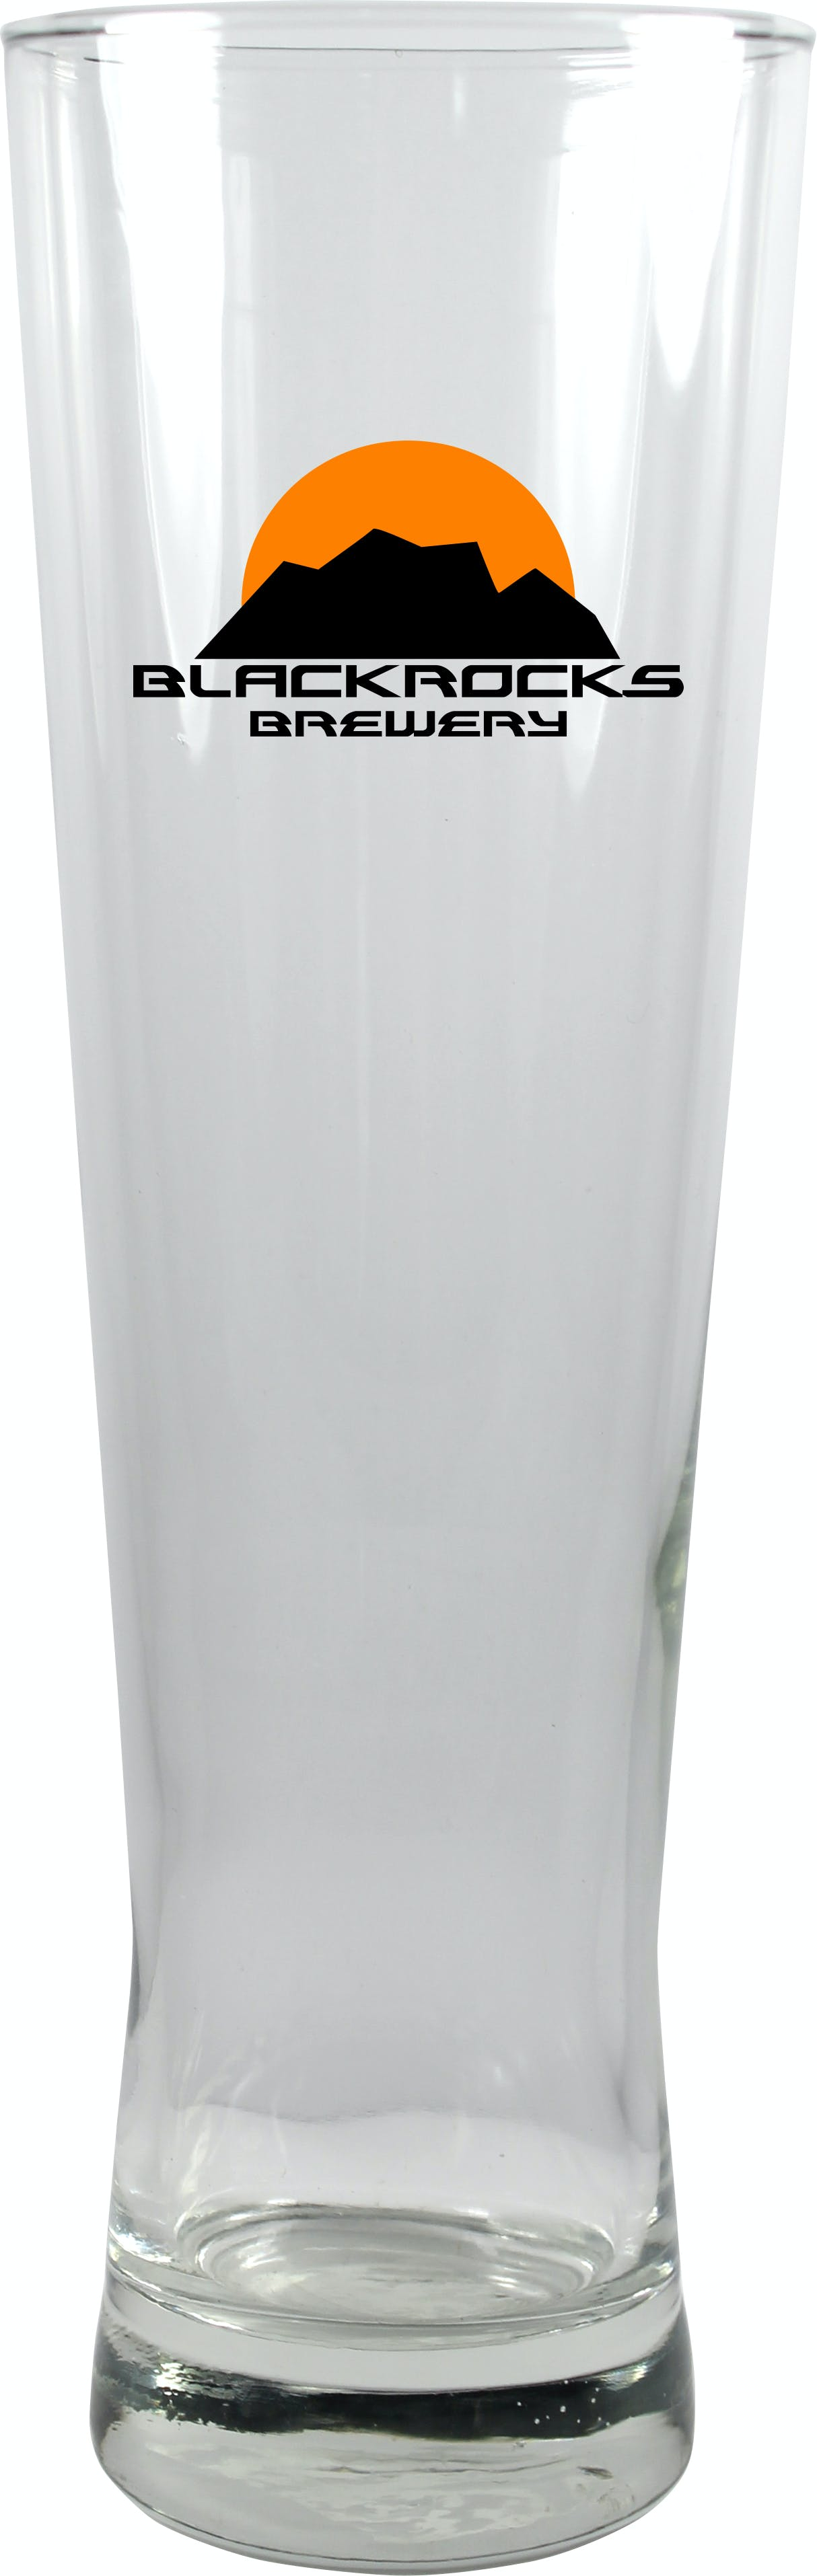 22 oz. Premium Pinnacle Beer Glass Beer glass sold by Prestige Glassware